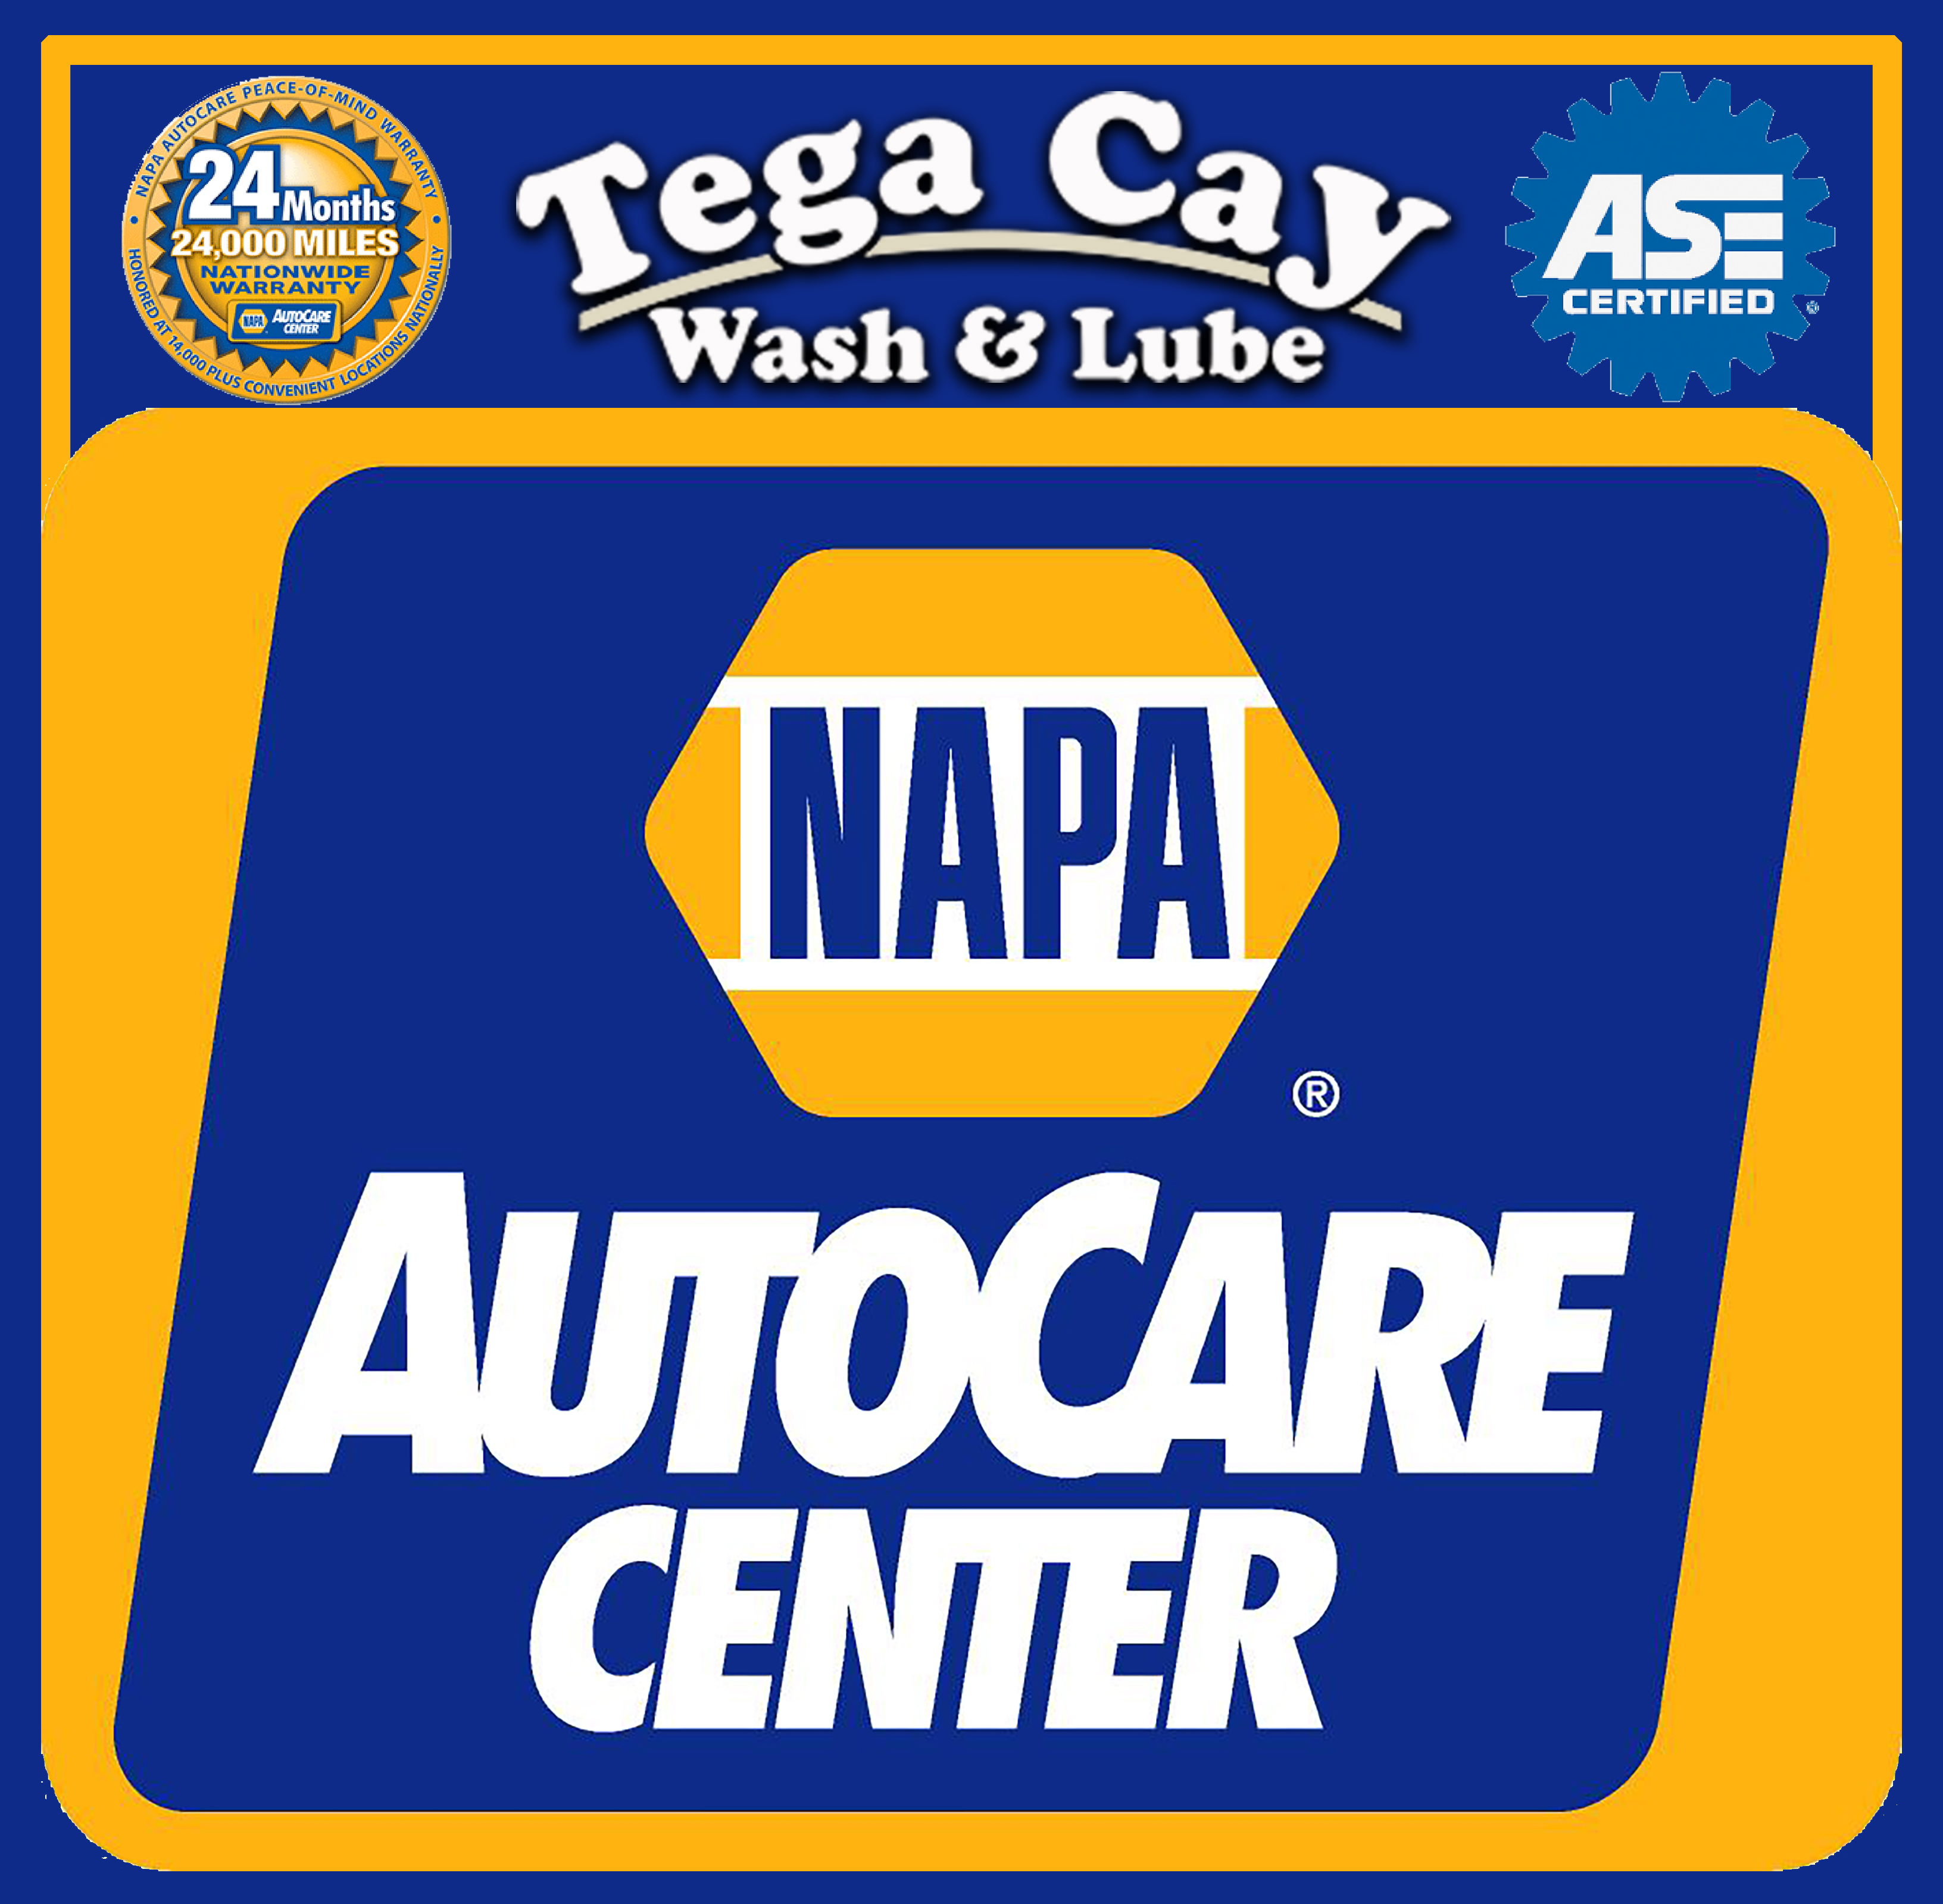 Tega Cay Wash & Lube-Oil Change,Fort Mill SC,Carwash